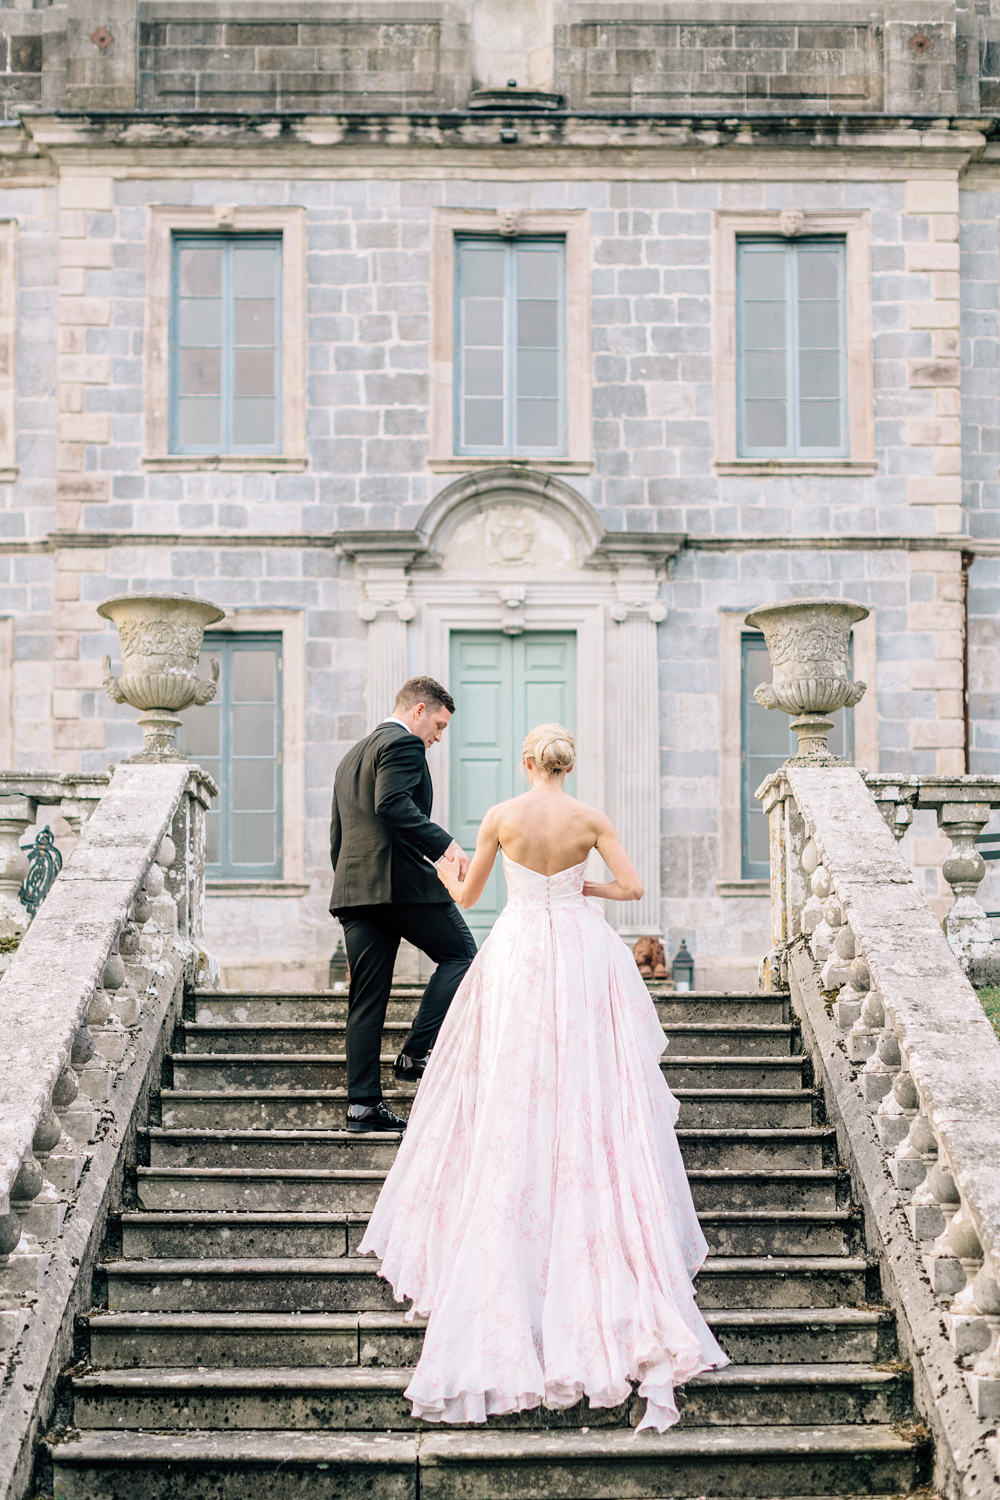 blathnaid daire wedding couple climbing stairs